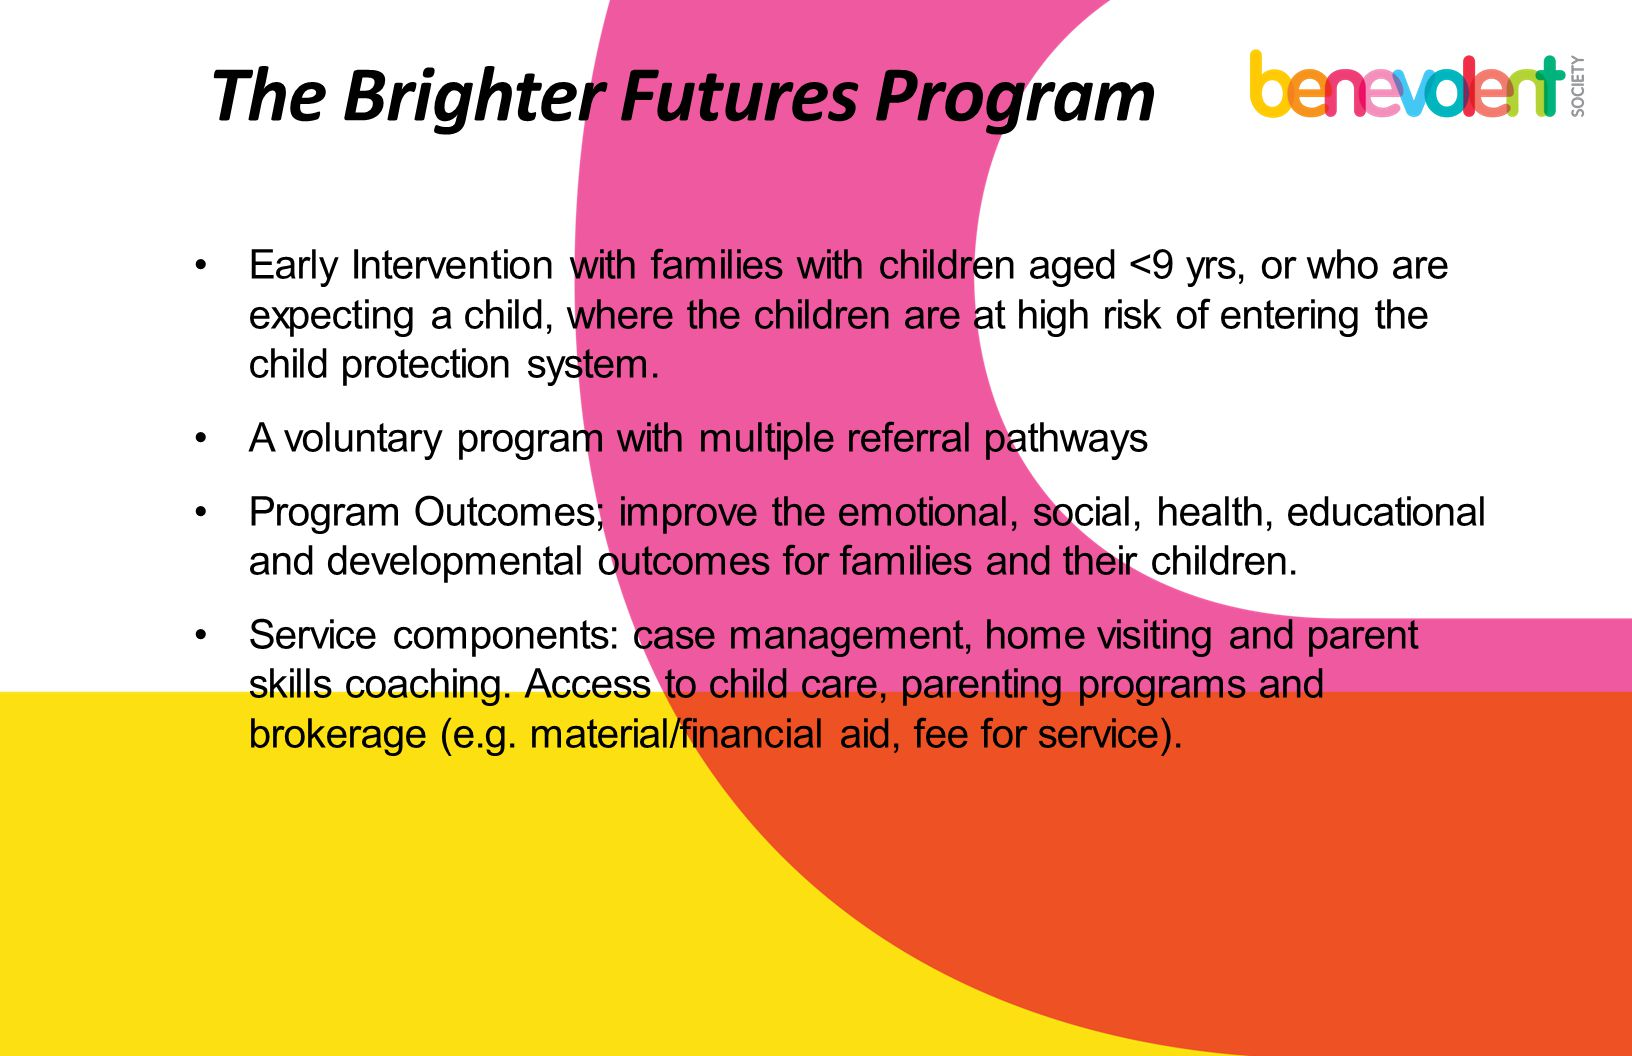 The Brighter Futures Program Early Intervention with families with children aged <9 yrs, or who are expecting a child, where the children are at high